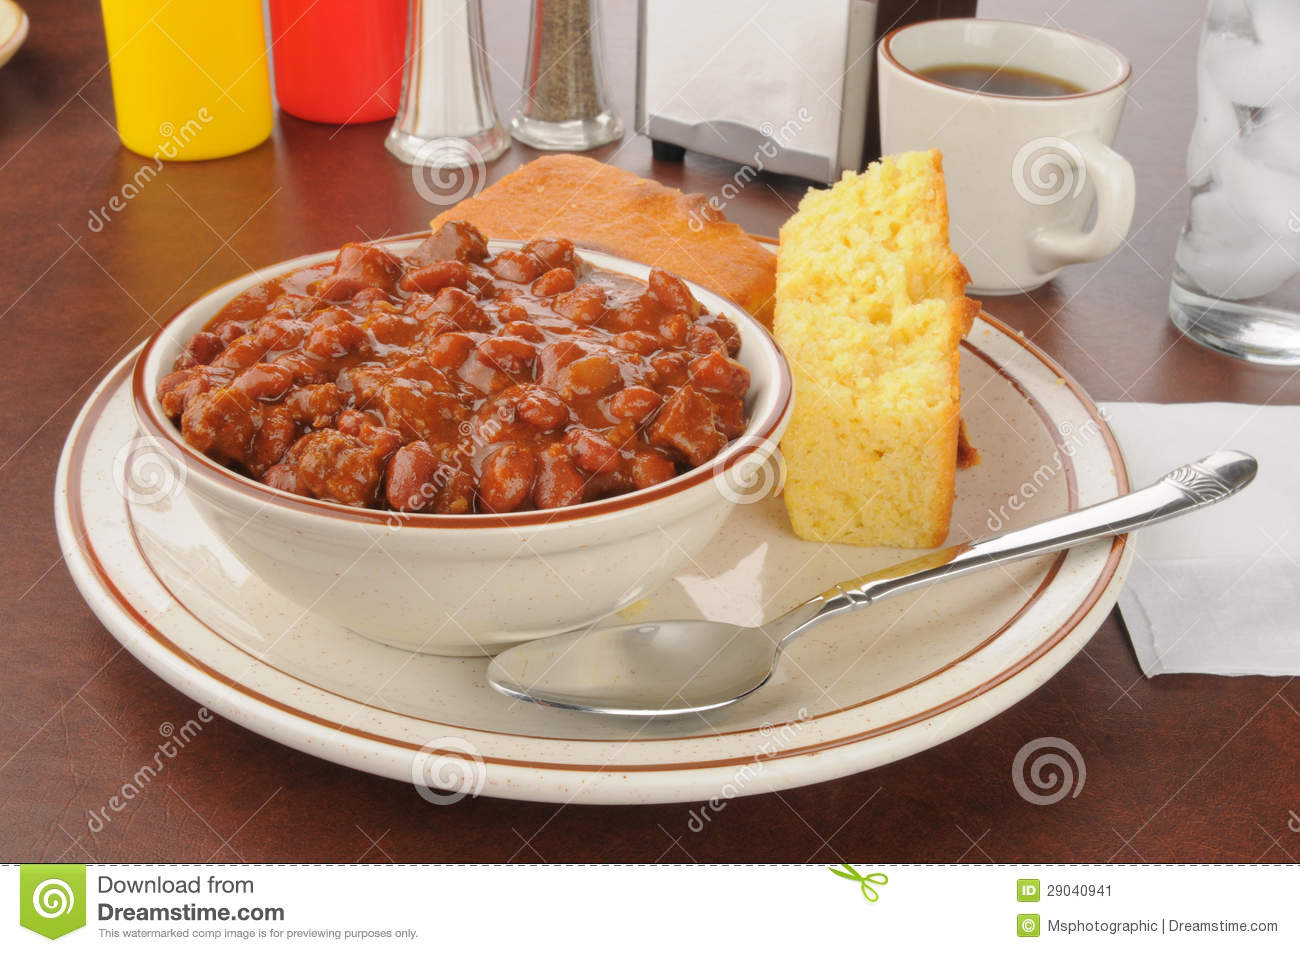 Chili with cornbread stock image. Image of meal, condiments.